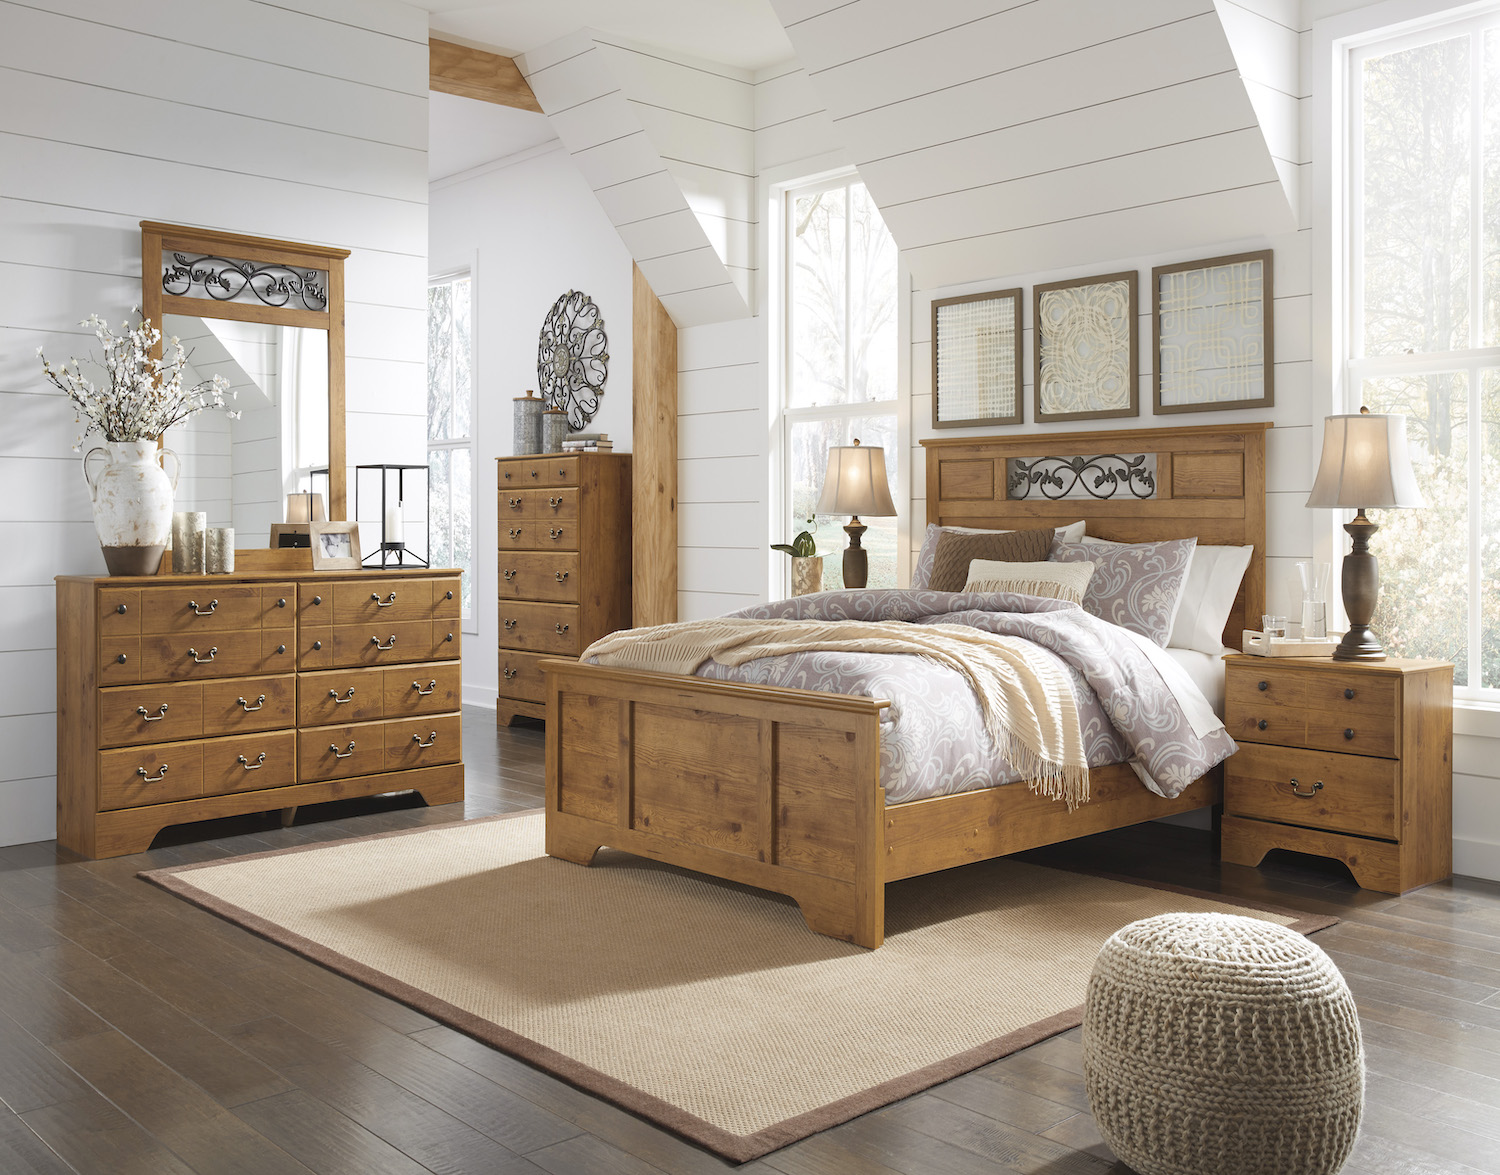 Bittersweet 6 PC Bedroom Set, B219, Bedroom Sets, Bittersweet 6 PC Bedroom Set from Ashley by Midha Furniture serving Brampton, Mississauga, Etobicoke, Toronto, Scraborough, Caledon, Cambridge, Oakville, Markham, Ajax, Pickering, Oshawa, Richmondhill, Kitchener, Hamilton, Cambridge, Waterloo and GTA area